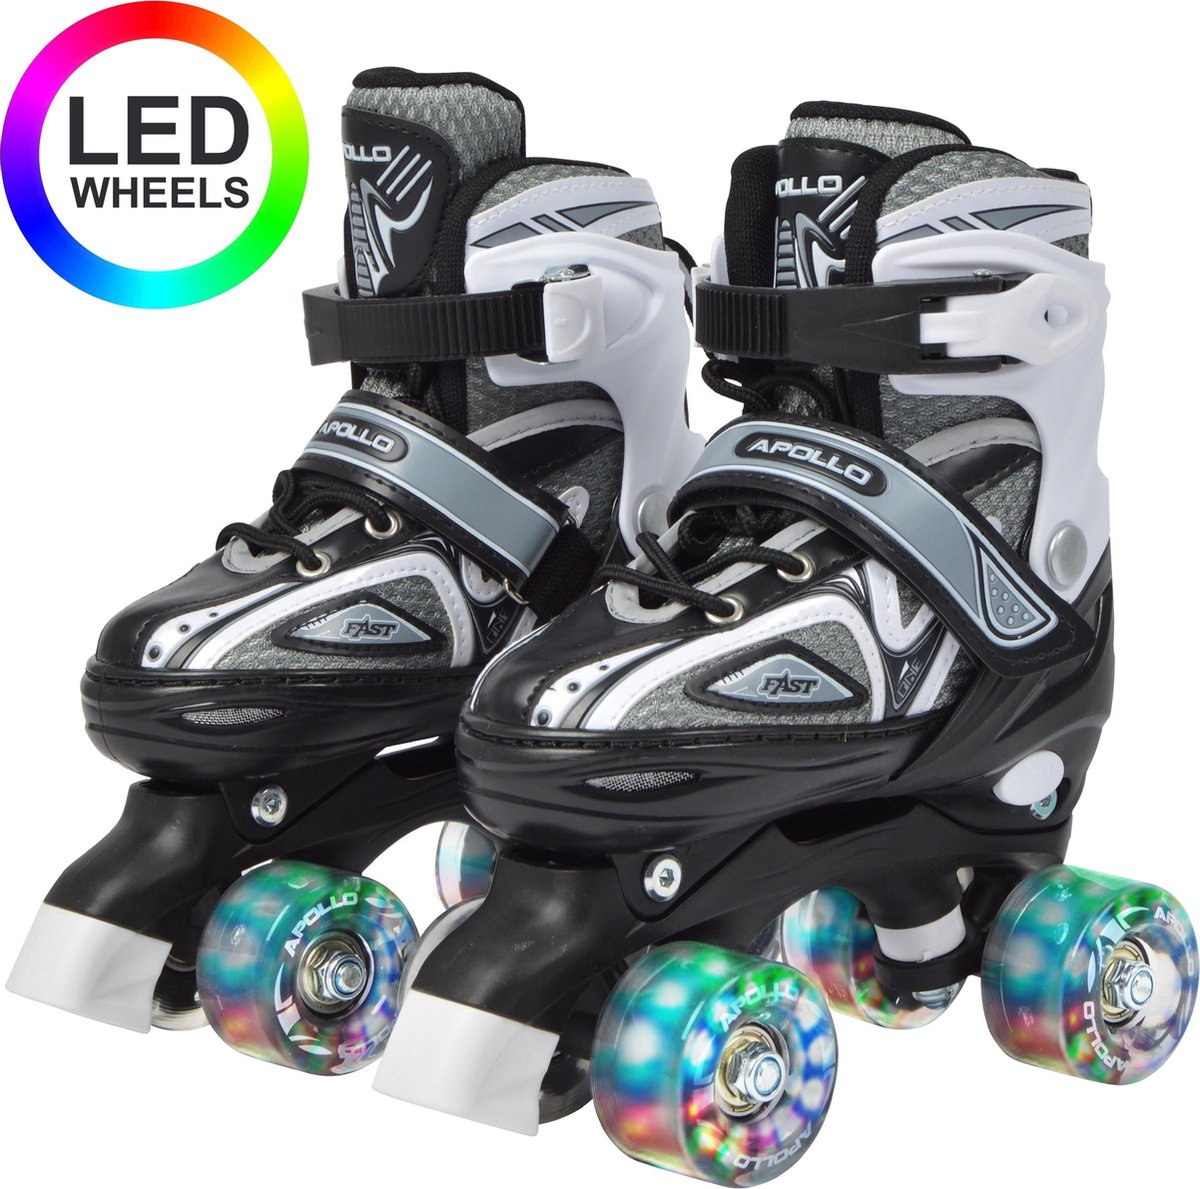 Apollo LED Rolschaatsen Super Quads X-Pro